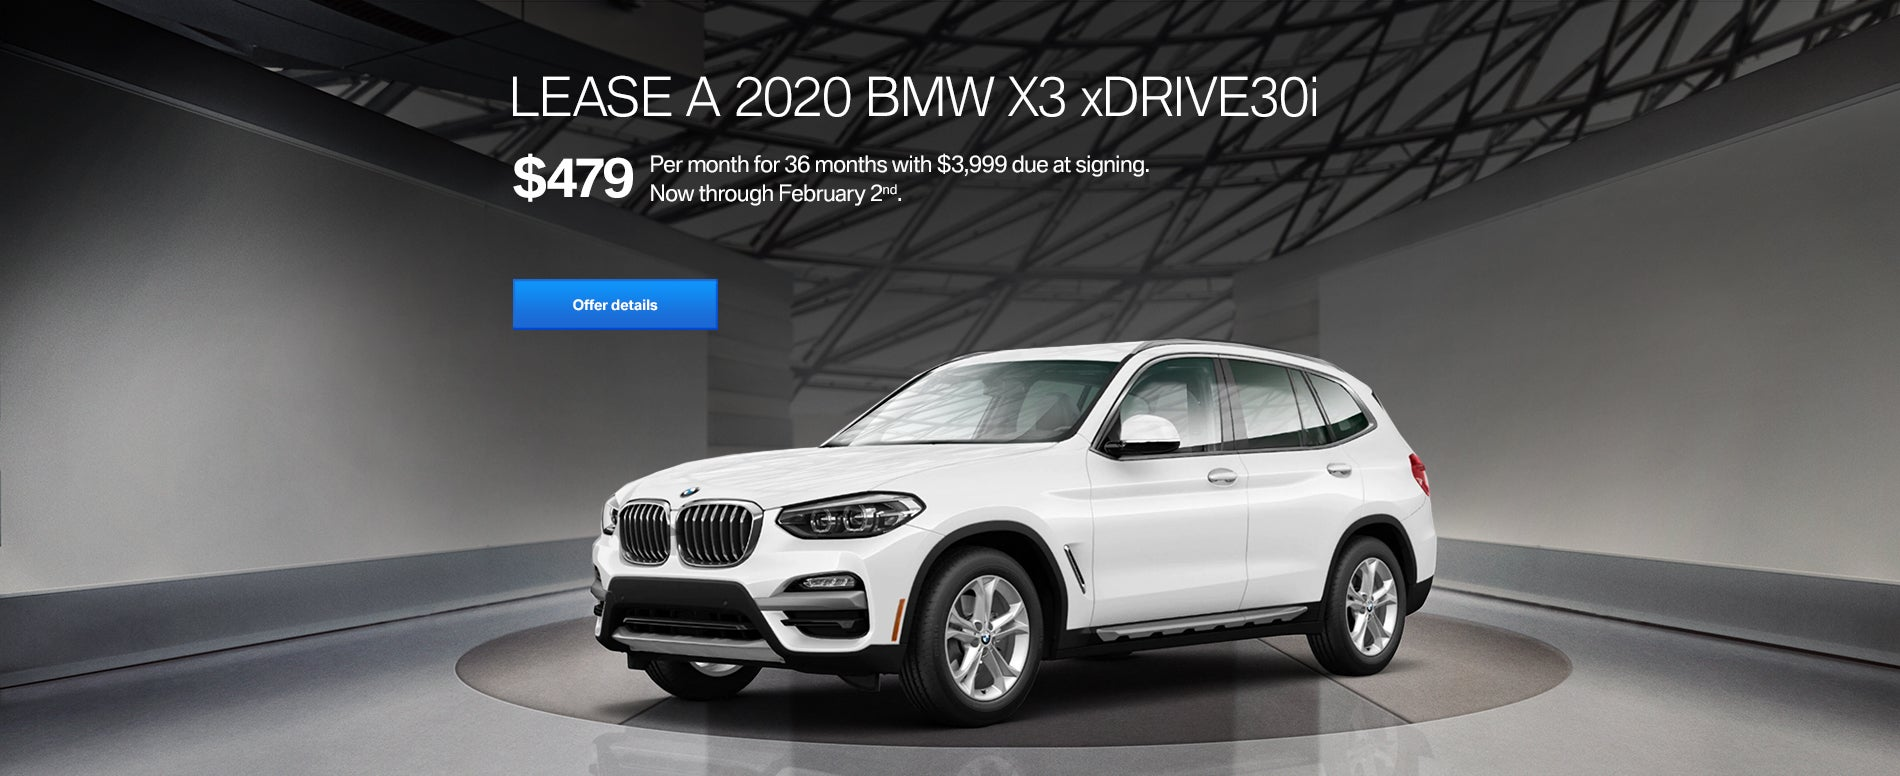 Used Car Dealerships In Louisville Ky >> Bmw Of Louisville New And Used Bmw Dealer In Louisville Ky